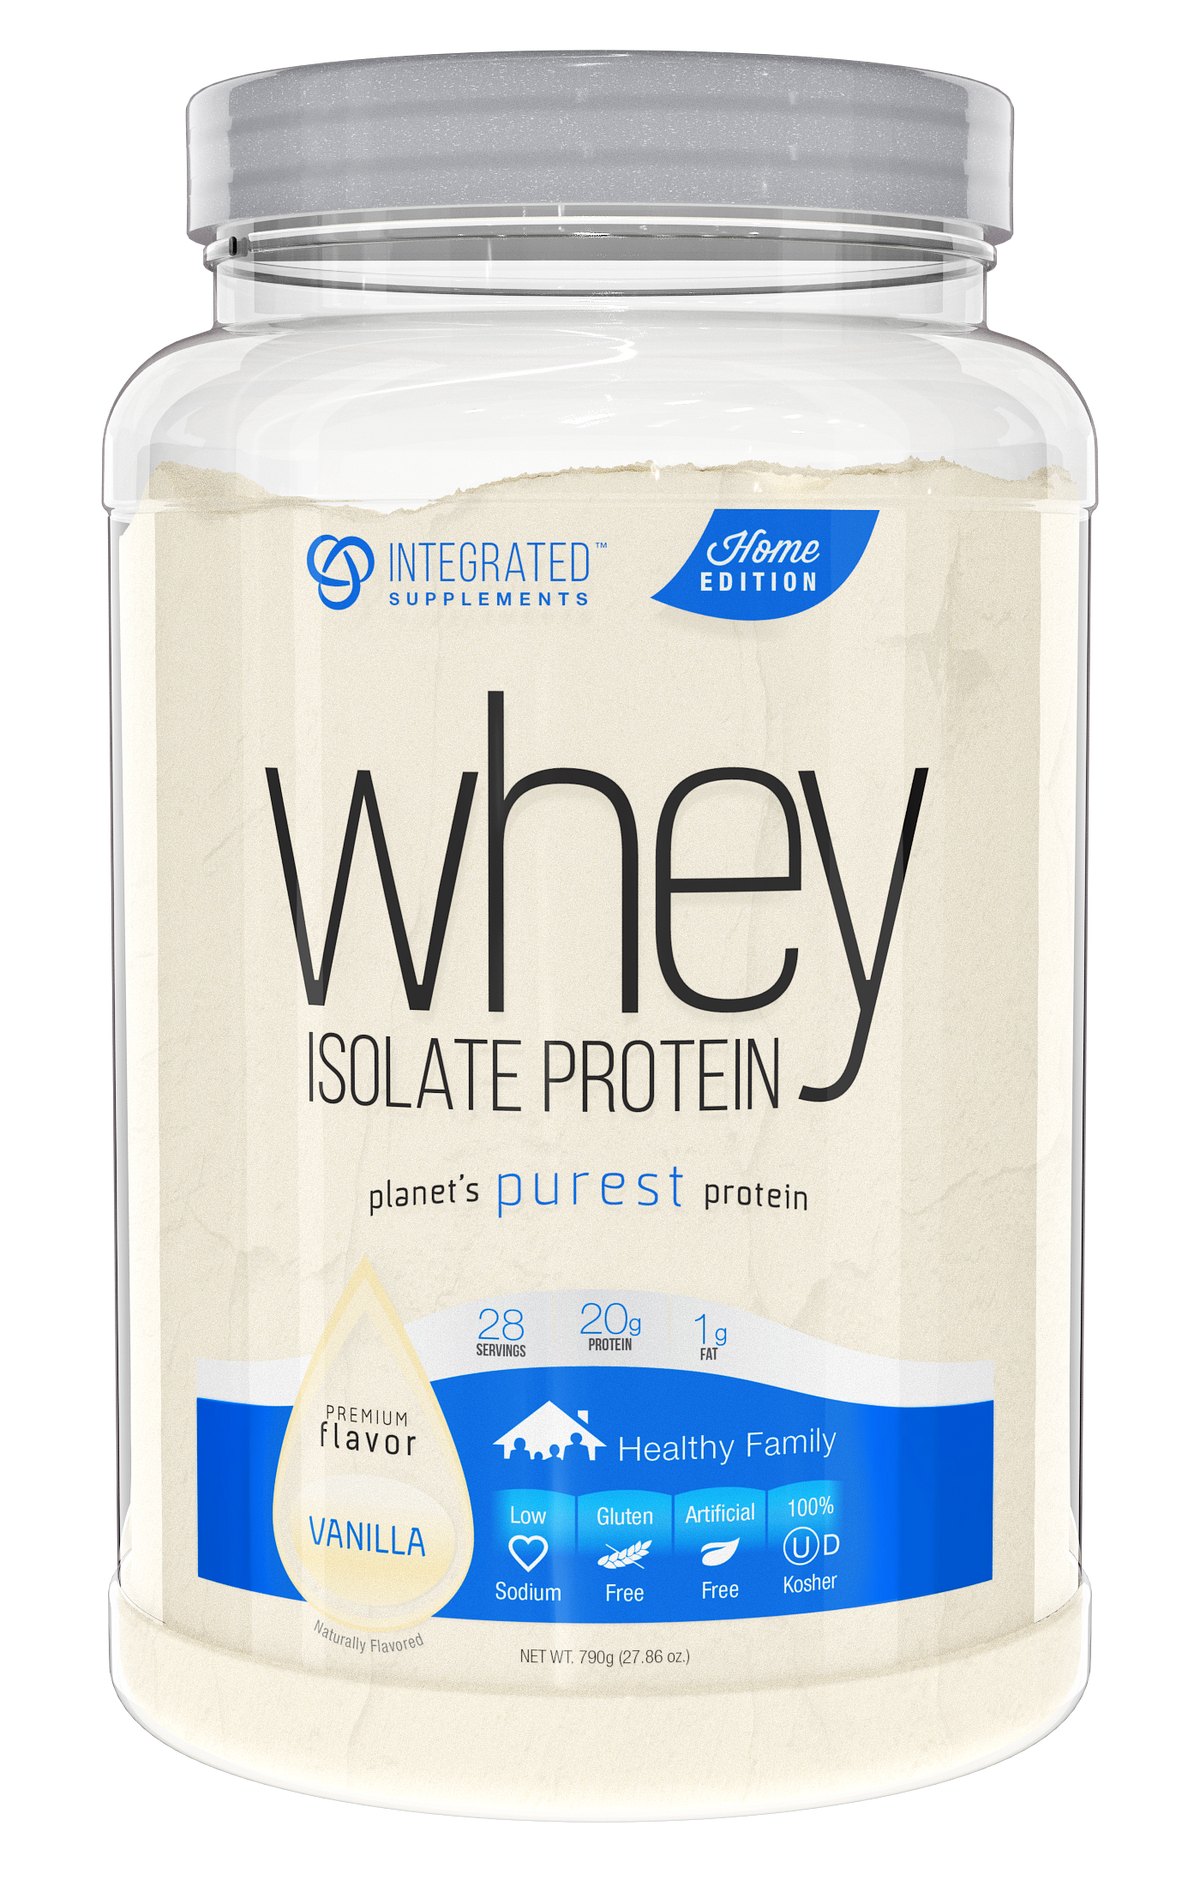 Integrated Supplements Whey Isolate Protein